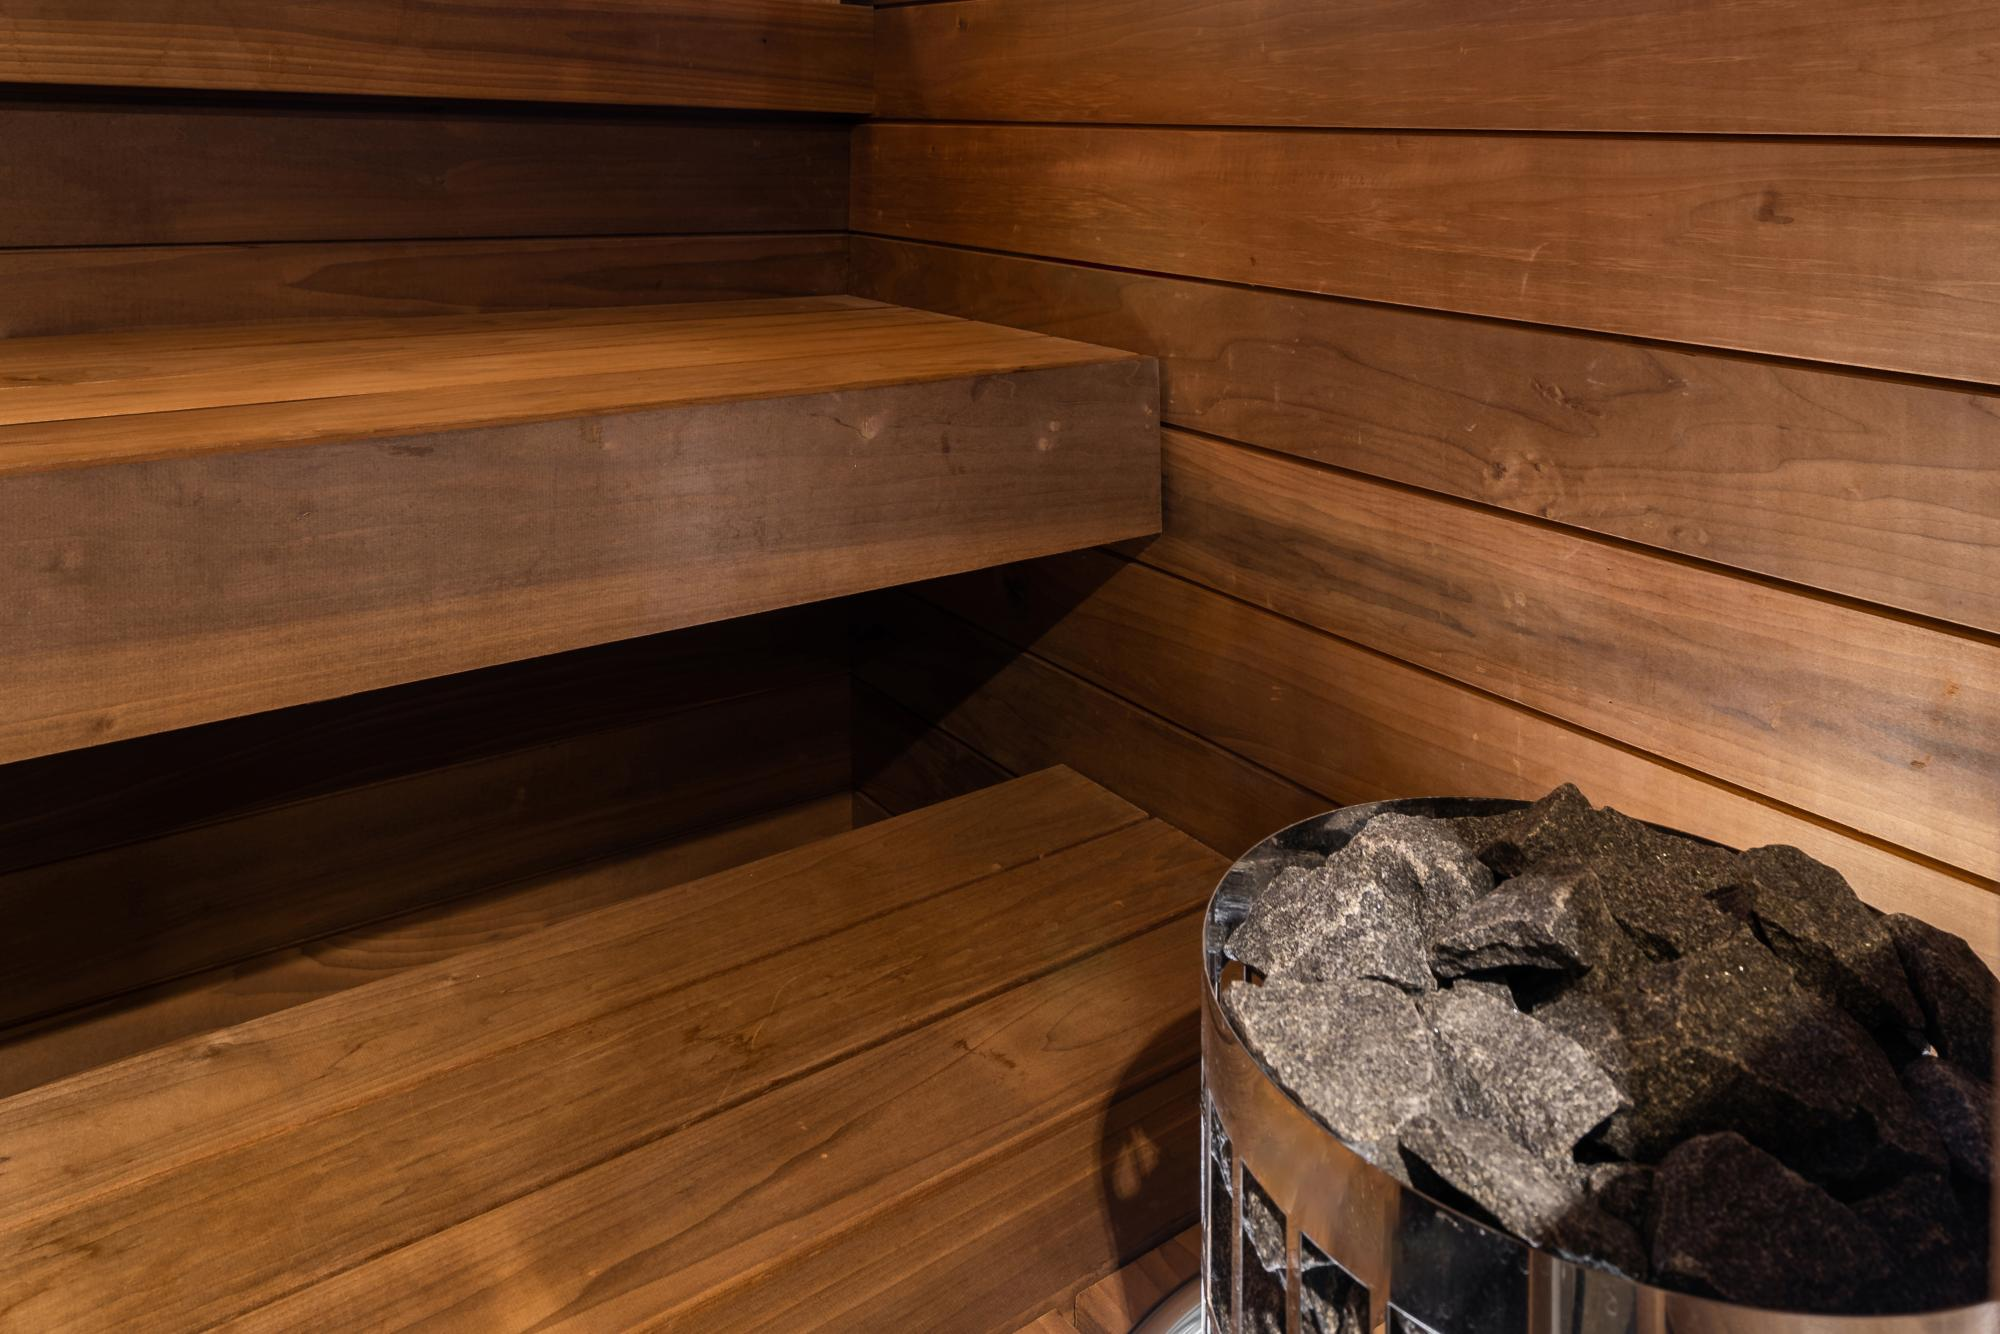 Thermoheated tulipwood sauna panels and benches